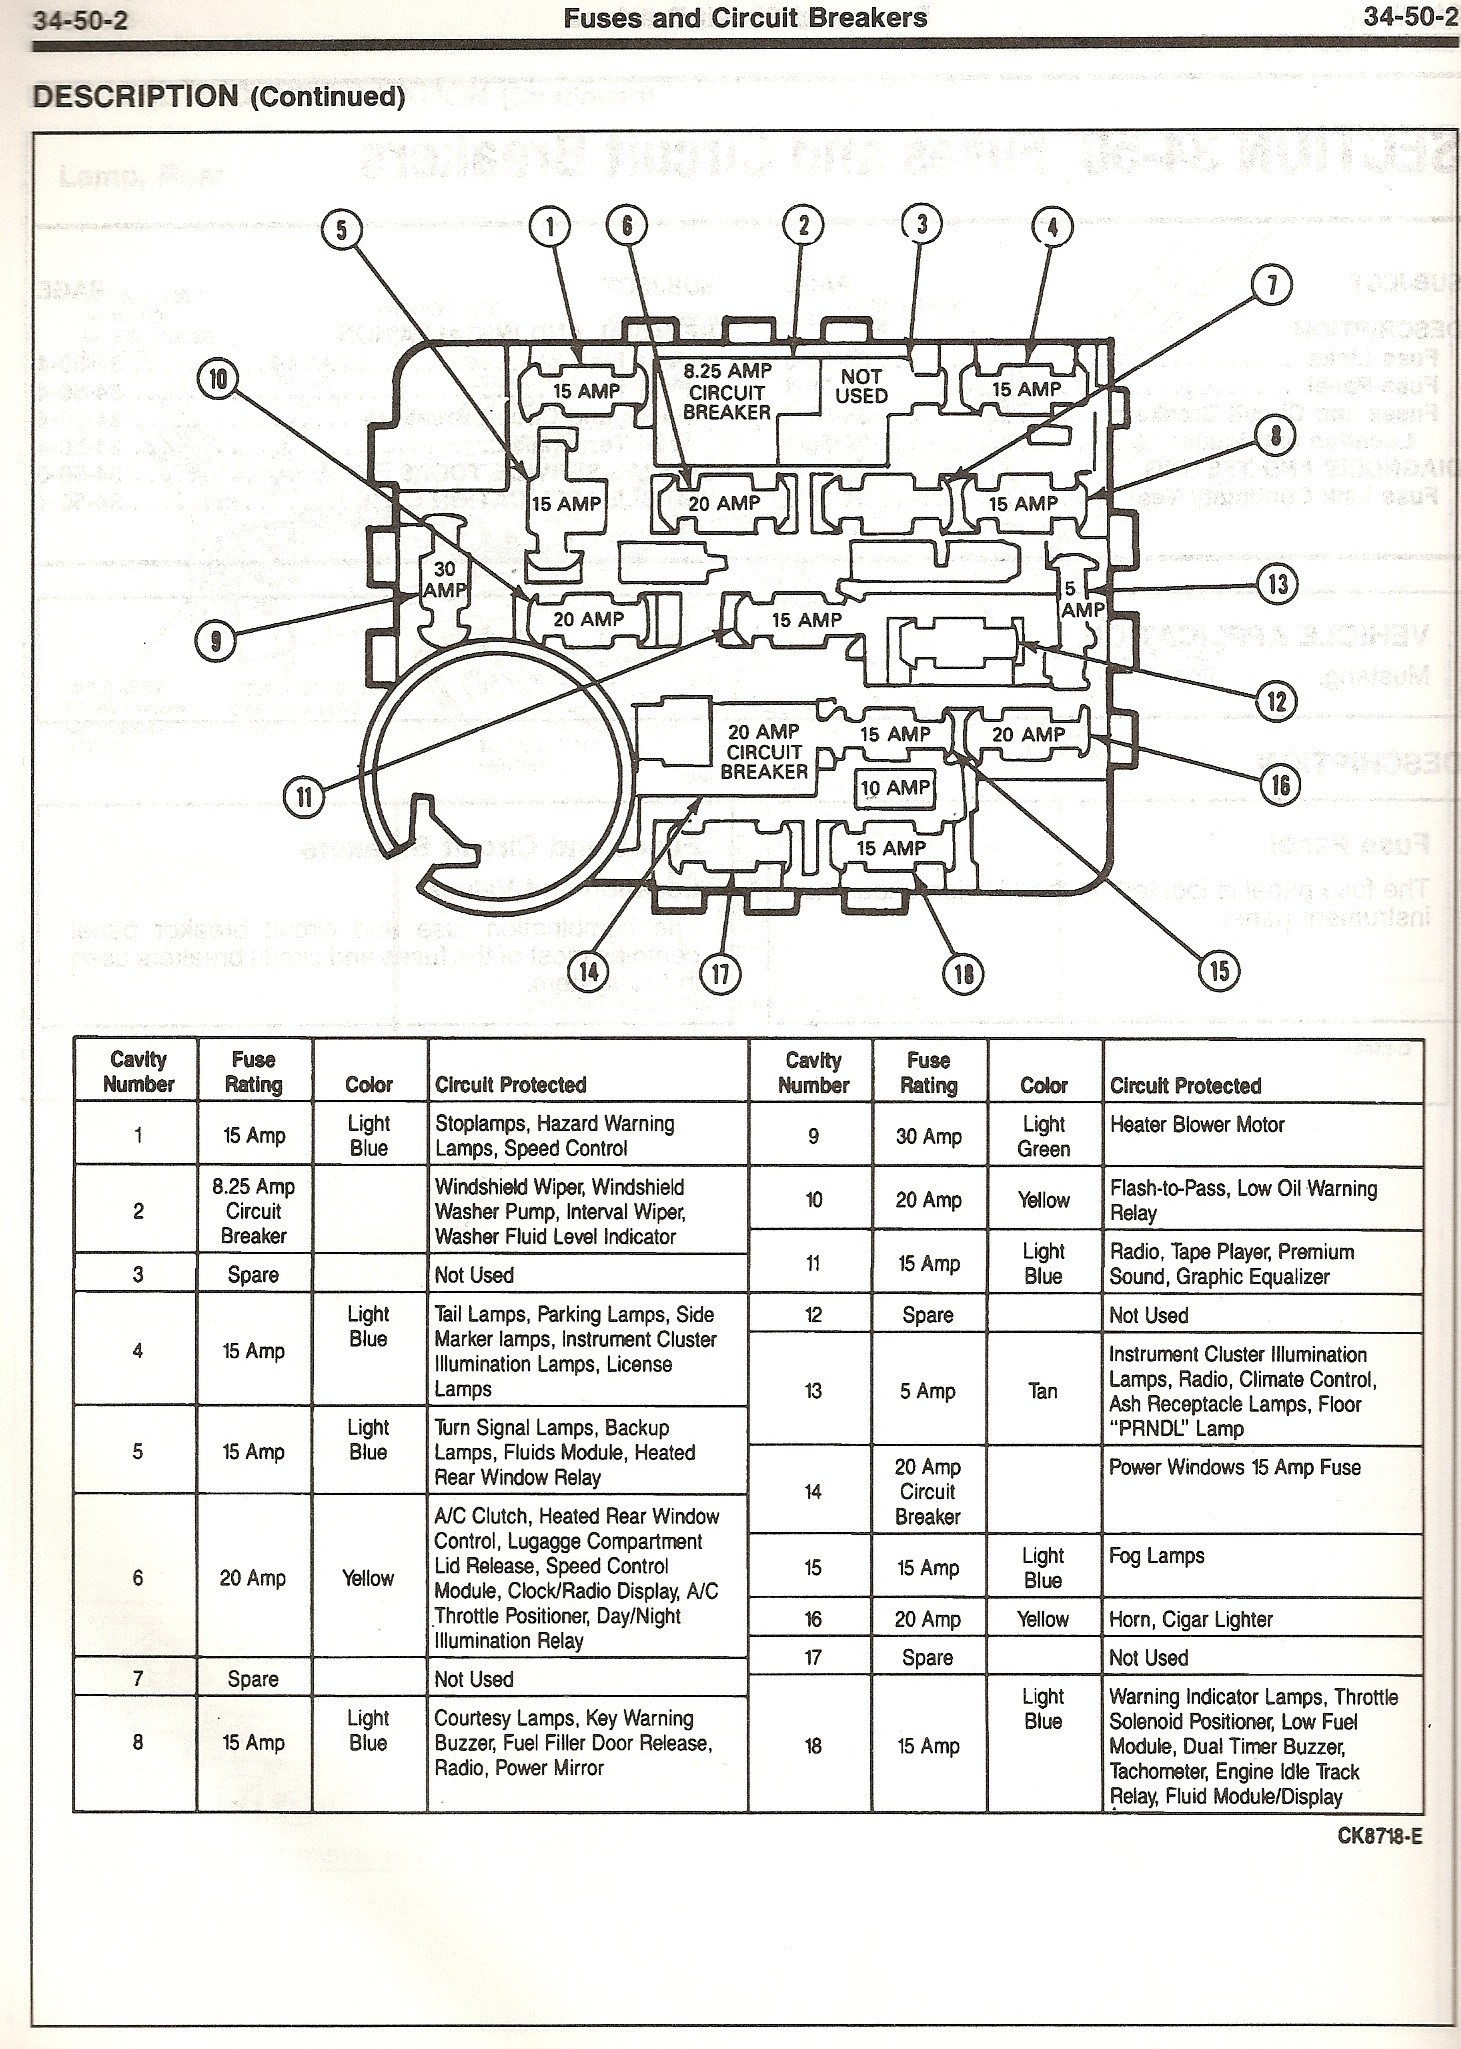 2009 ford Escape Engine Diagram 2009 ford Escape Fuse Panel Diagram Of 2009 ford Escape Engine Diagram